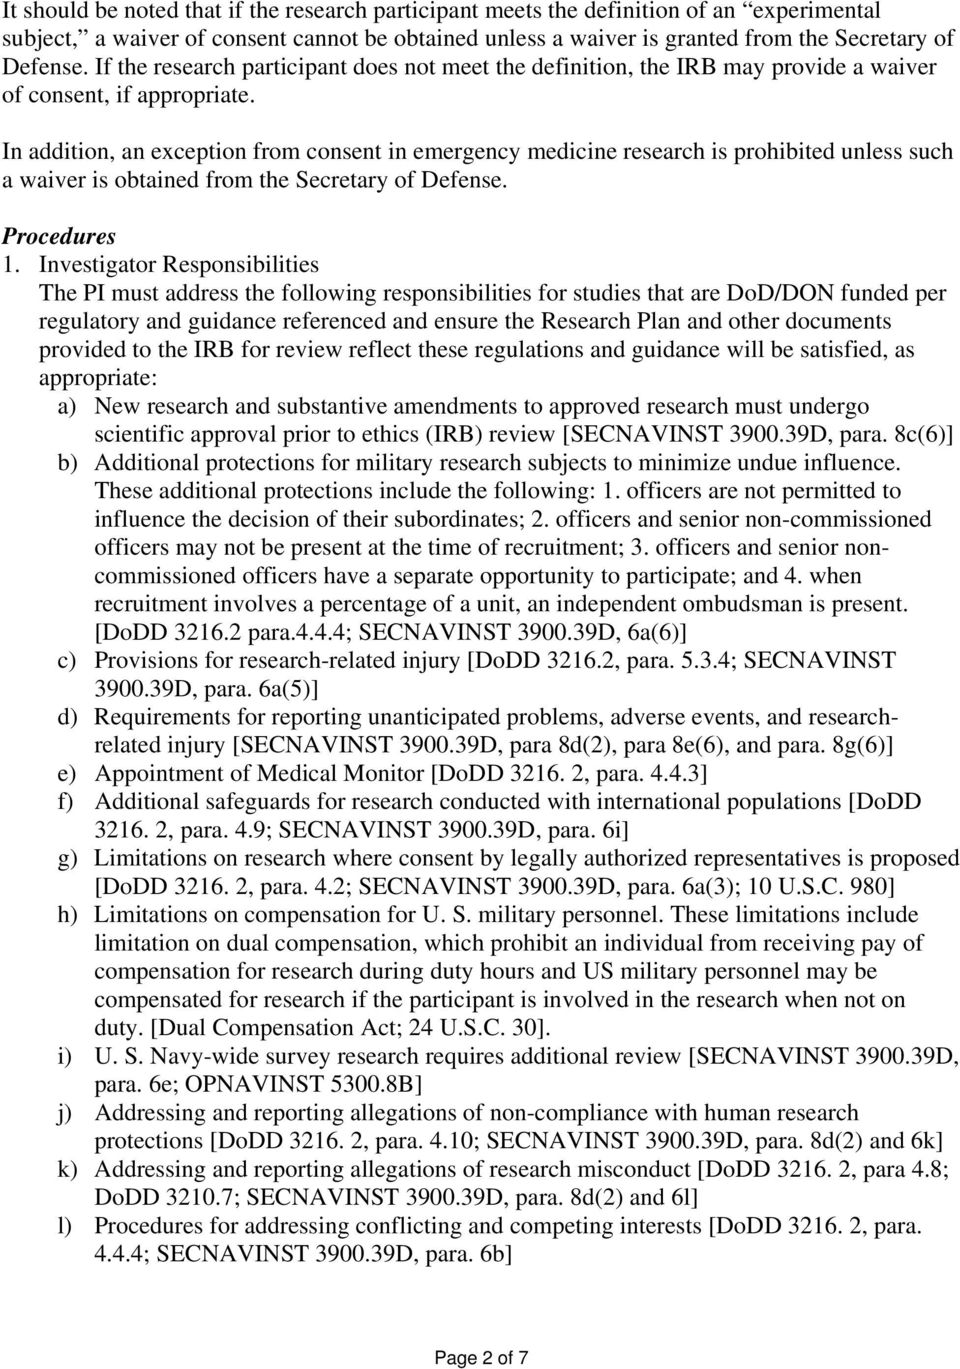 In addition, an exception from consent in emergency medicine research is prohibited unless such a waiver is obtained from the Secretary of Defense. Procedures 1.